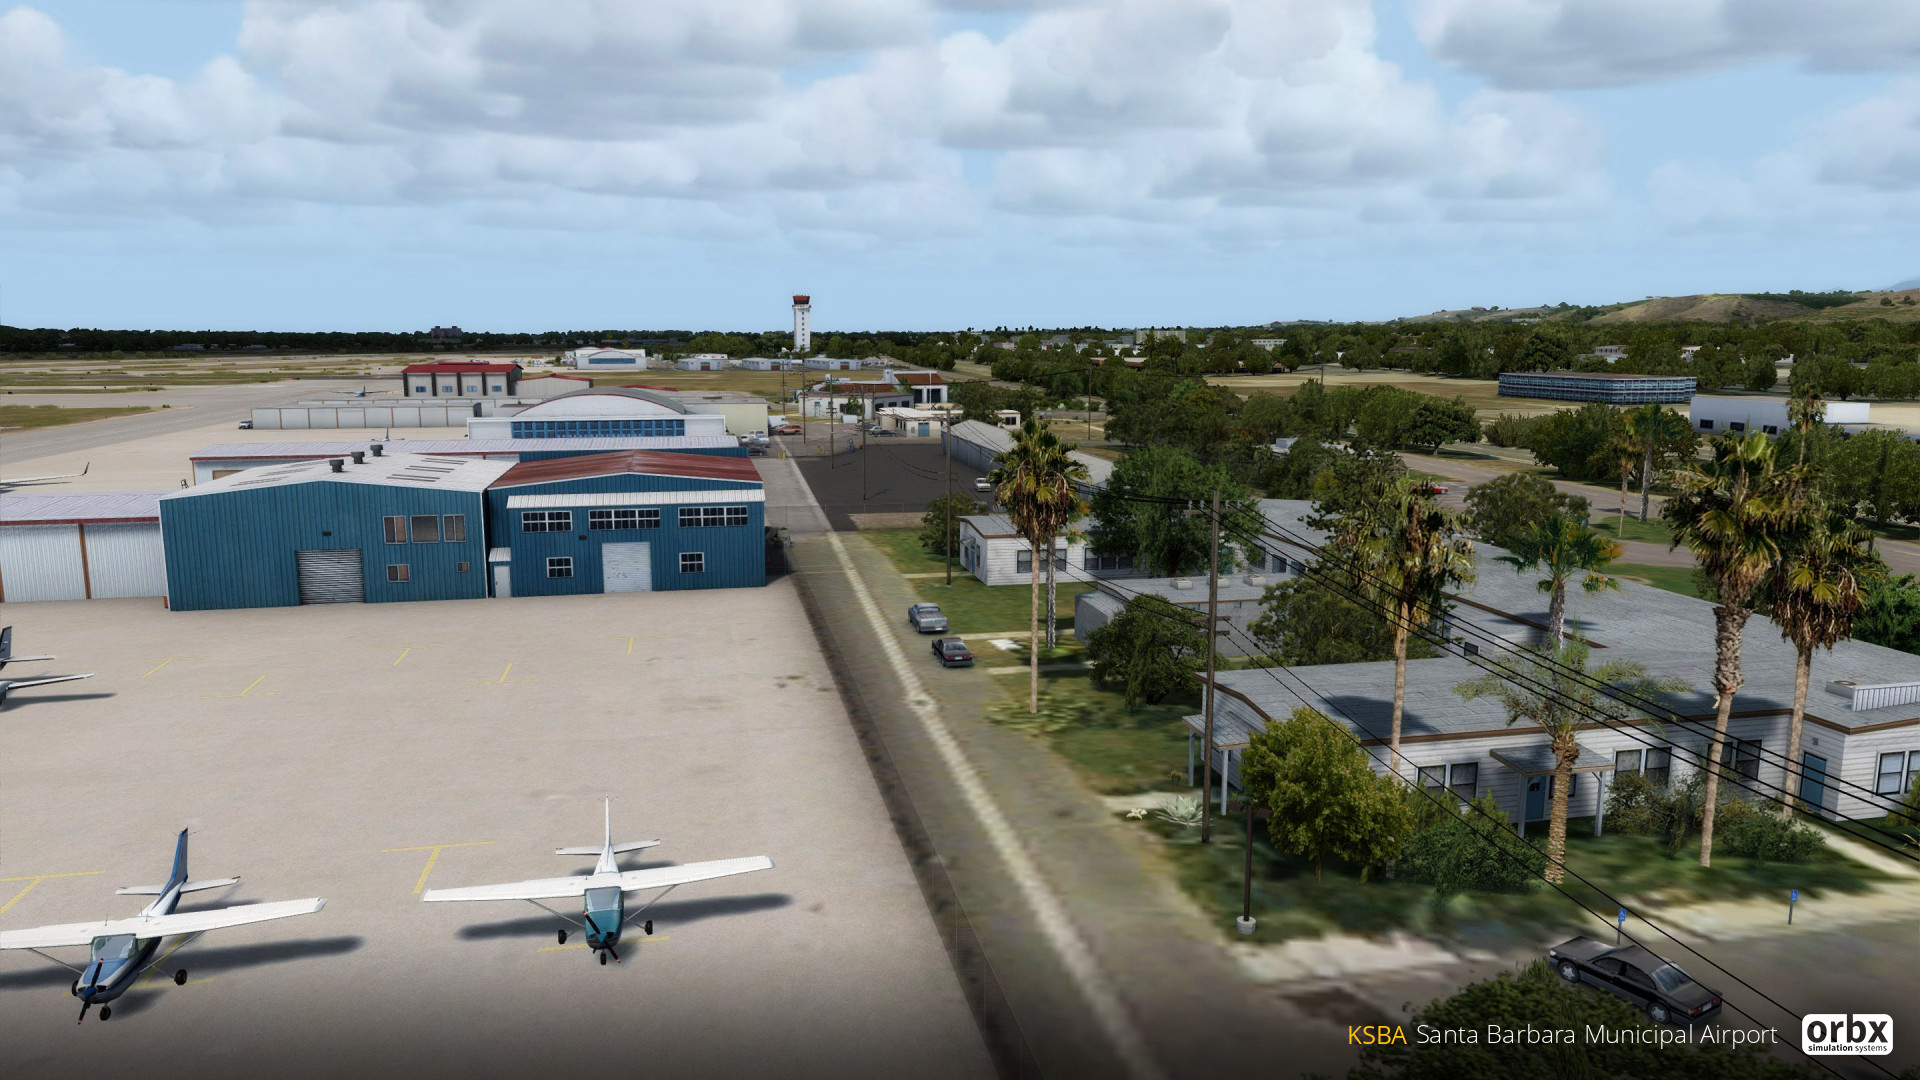 The American Riviera - Welcome to KSBA Santa Barbara for FSX